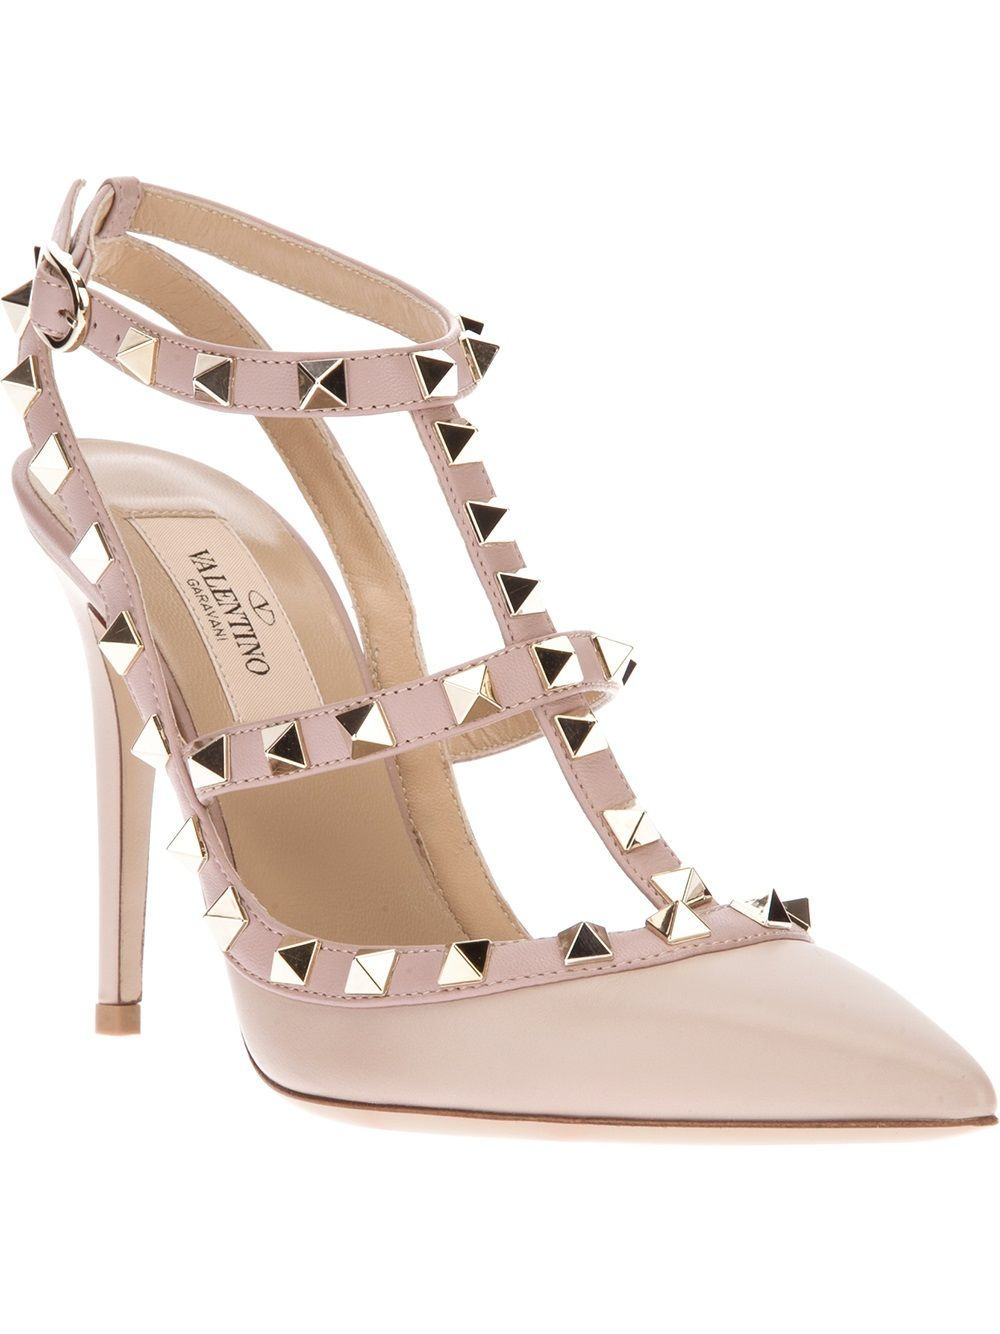 39d7707e8f0 VALENTINO GARAVANI  Rockstud  Strappy Pump - I ve always kinda loved these  - something about the prim and proper nude contrasted with the studs.